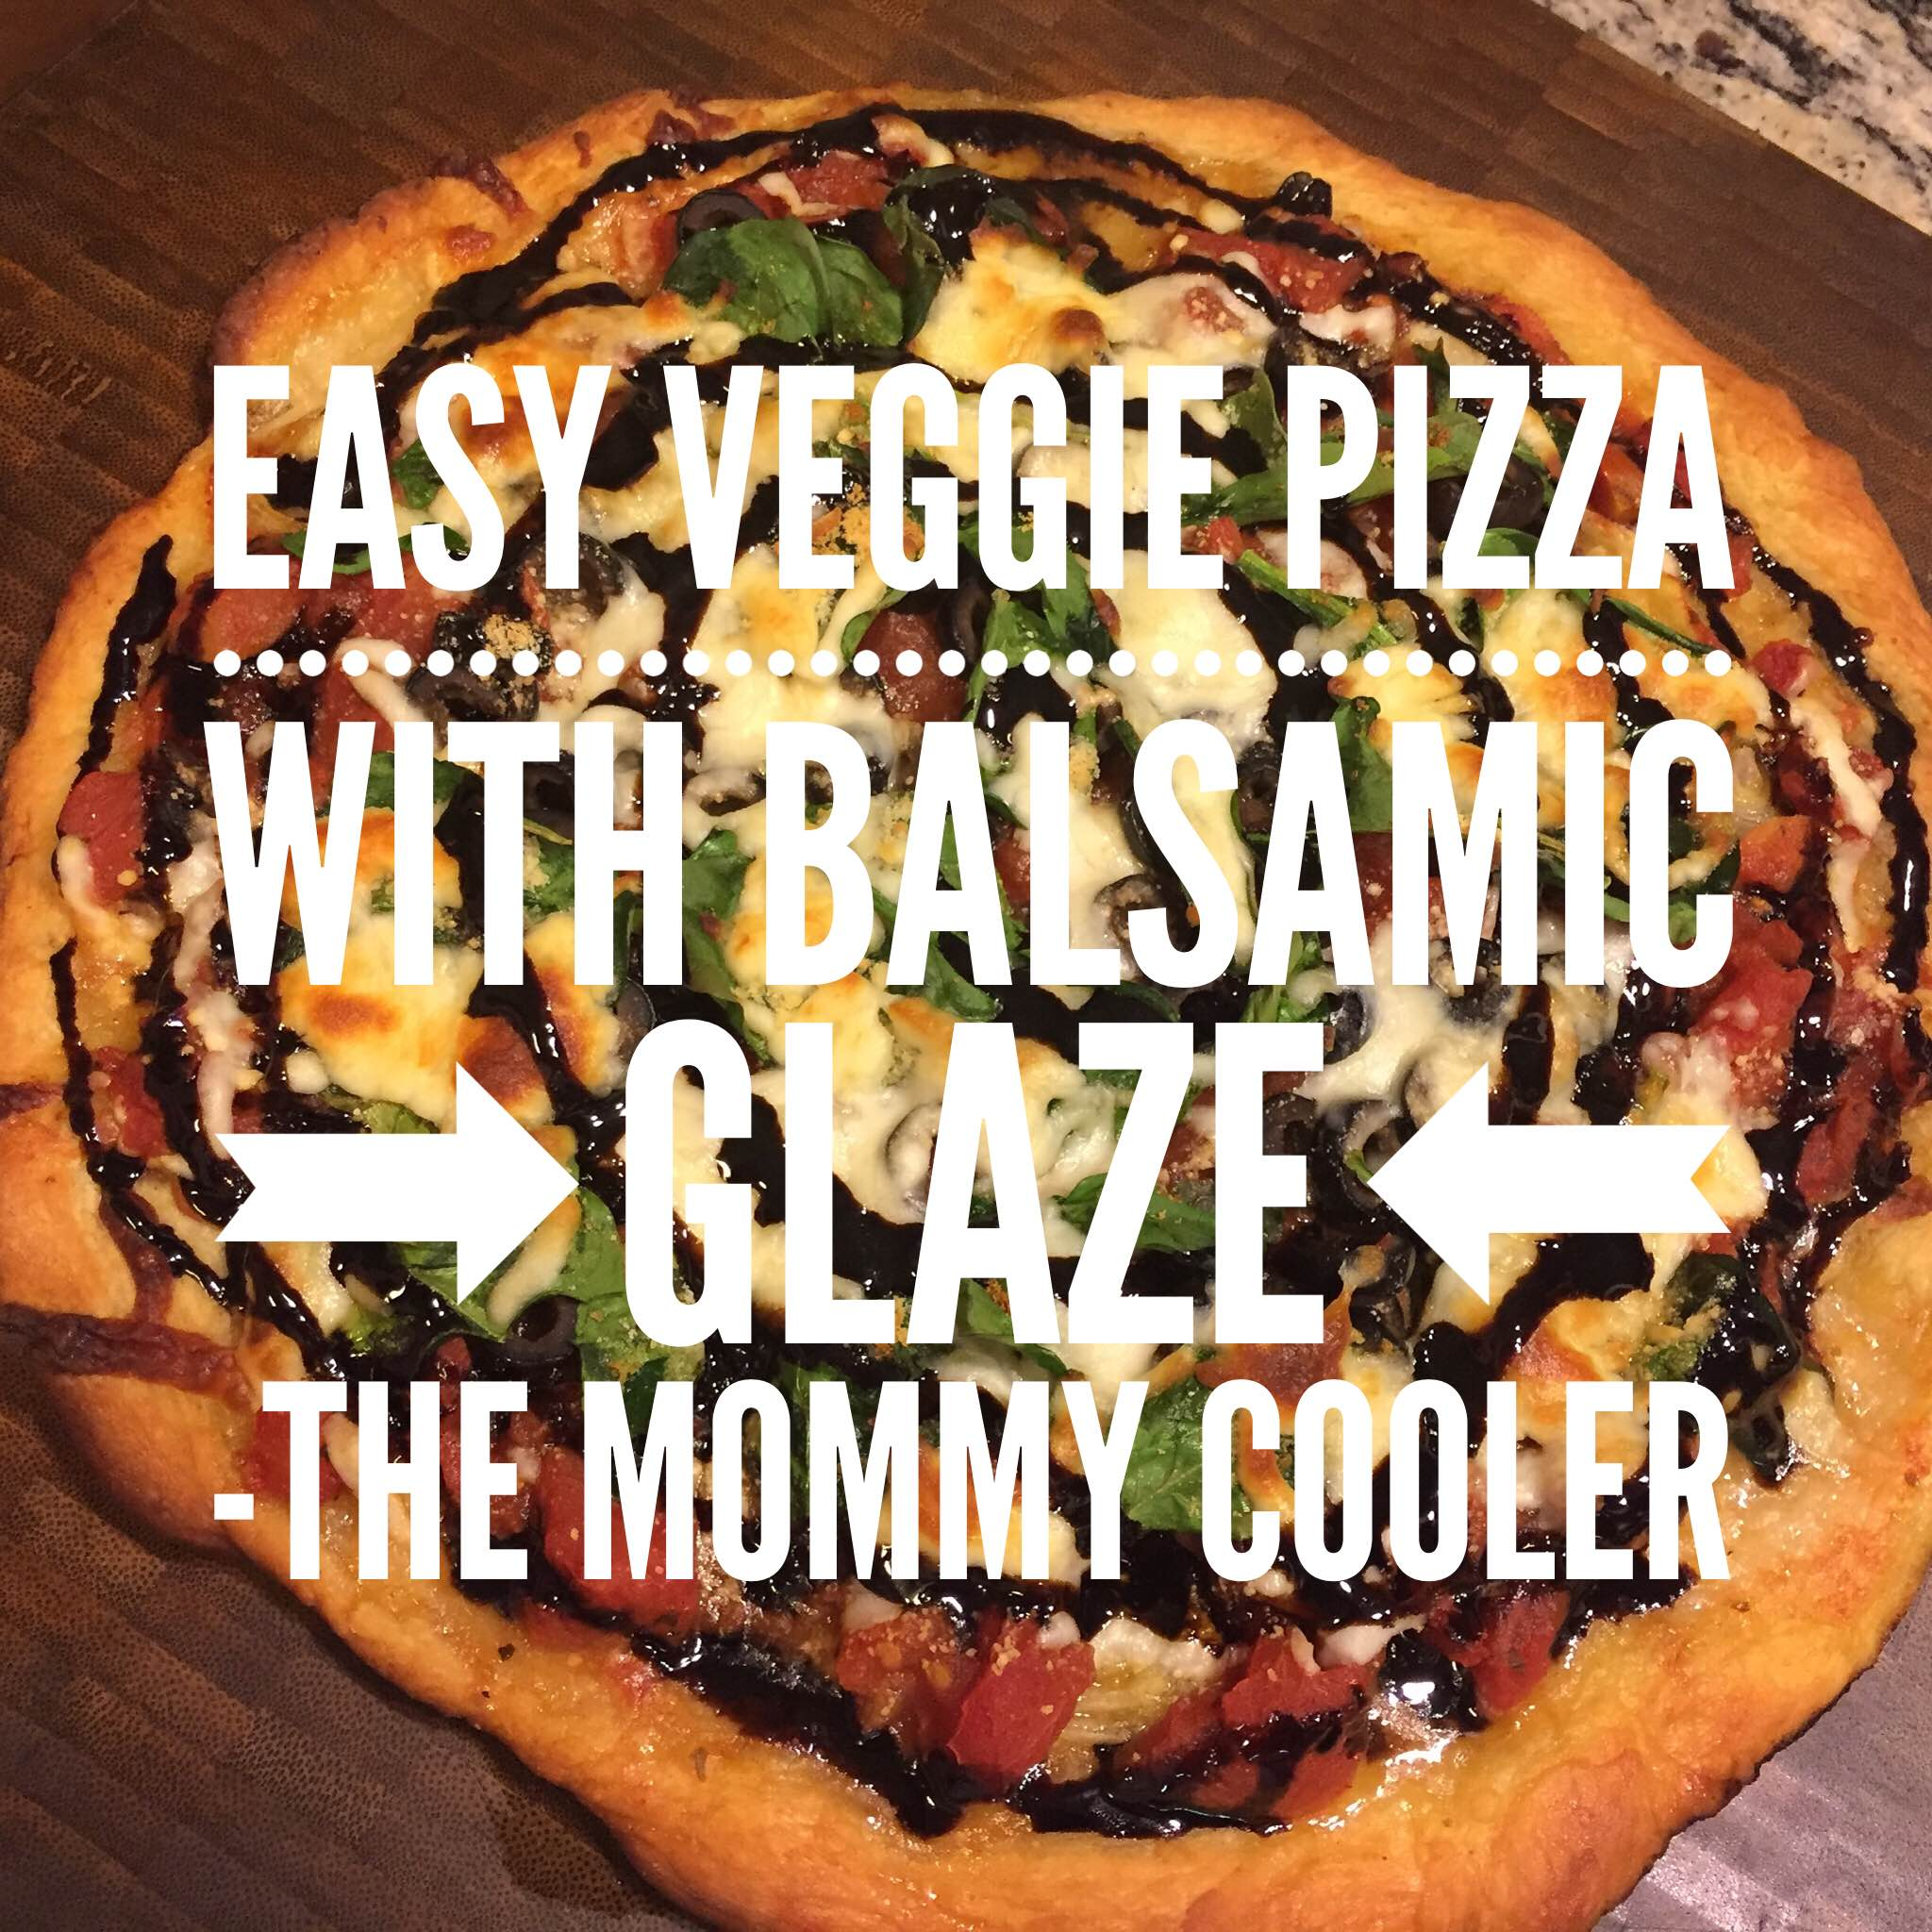 Want To Make Family Night Or A Girls Night Easy Make This Easy Veggie Pizza With Balsamic Glaze The Mommy Cooler